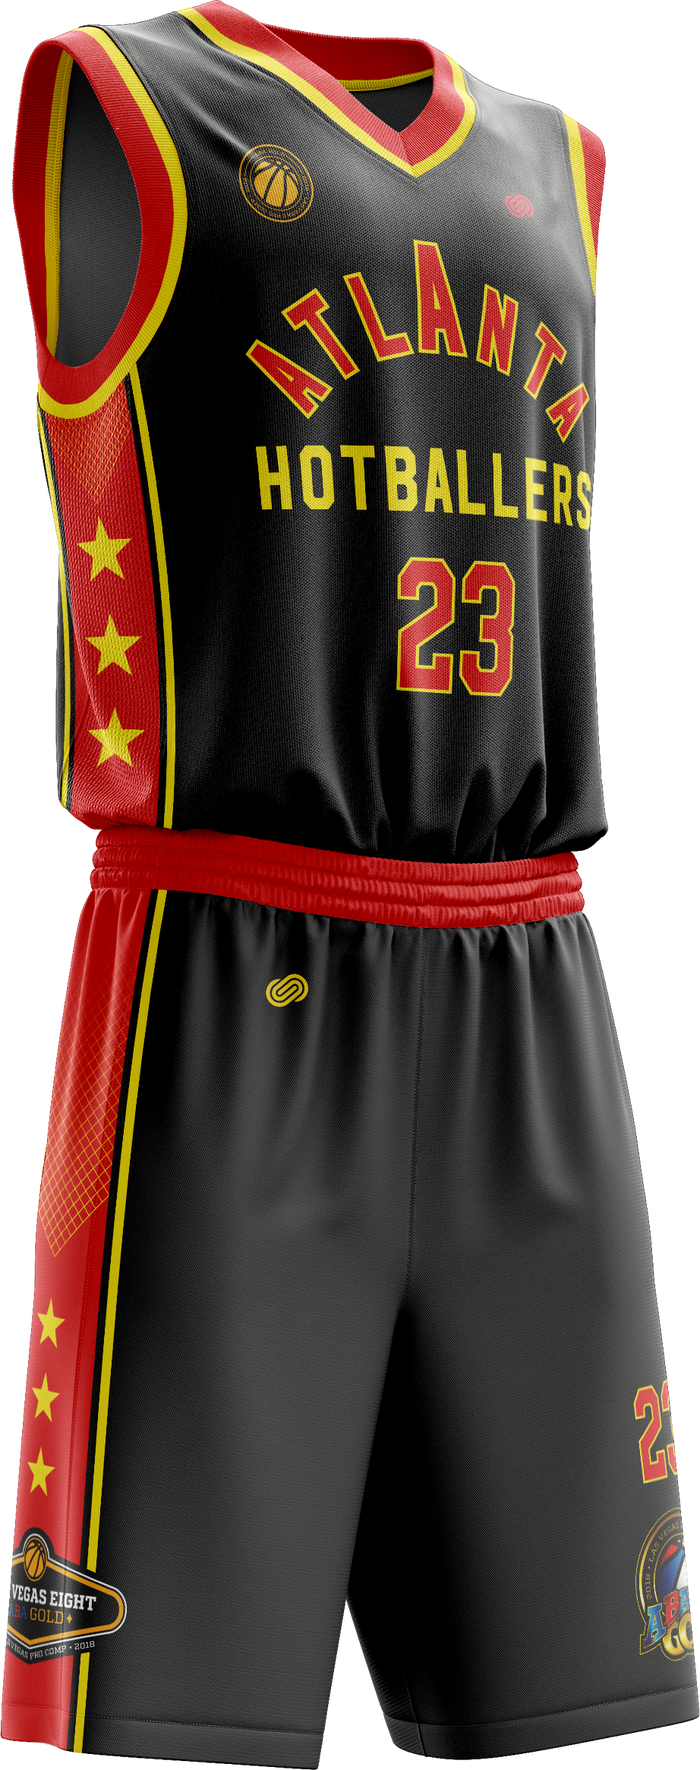 Atlanta Hotballers Road Uniform